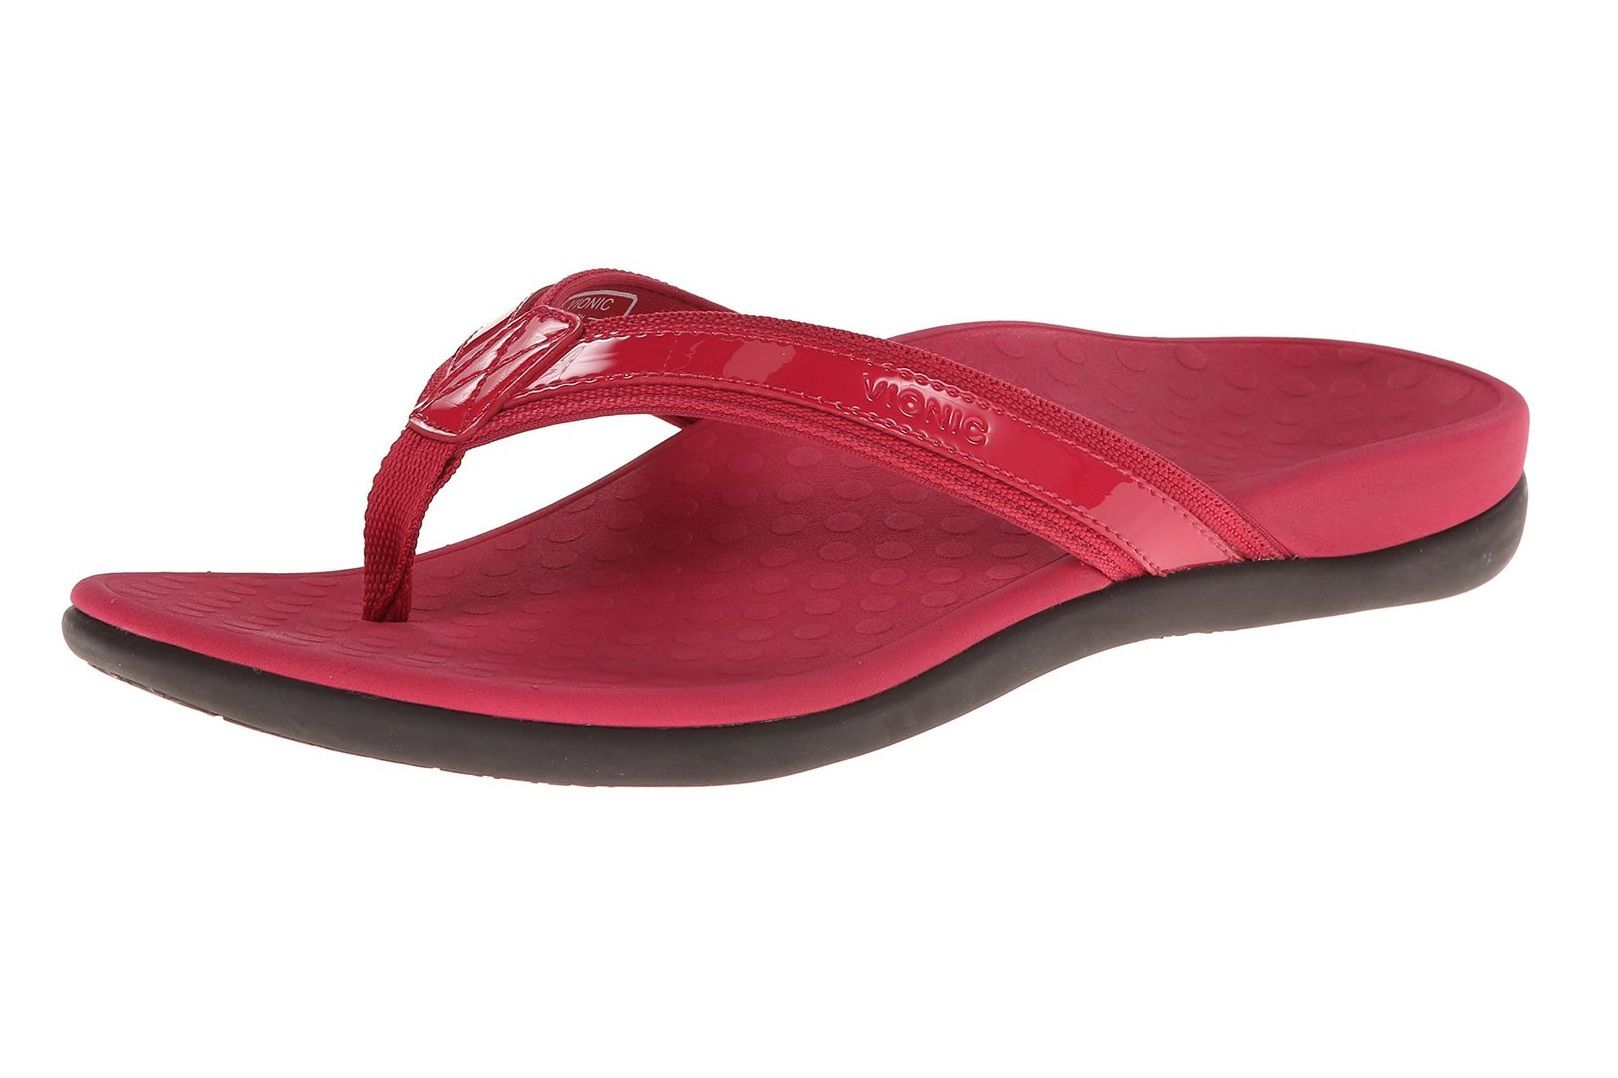 ab1362fb31e3 Best Flip Flops  Orthaheel Vionic Sandals and Flip Flops